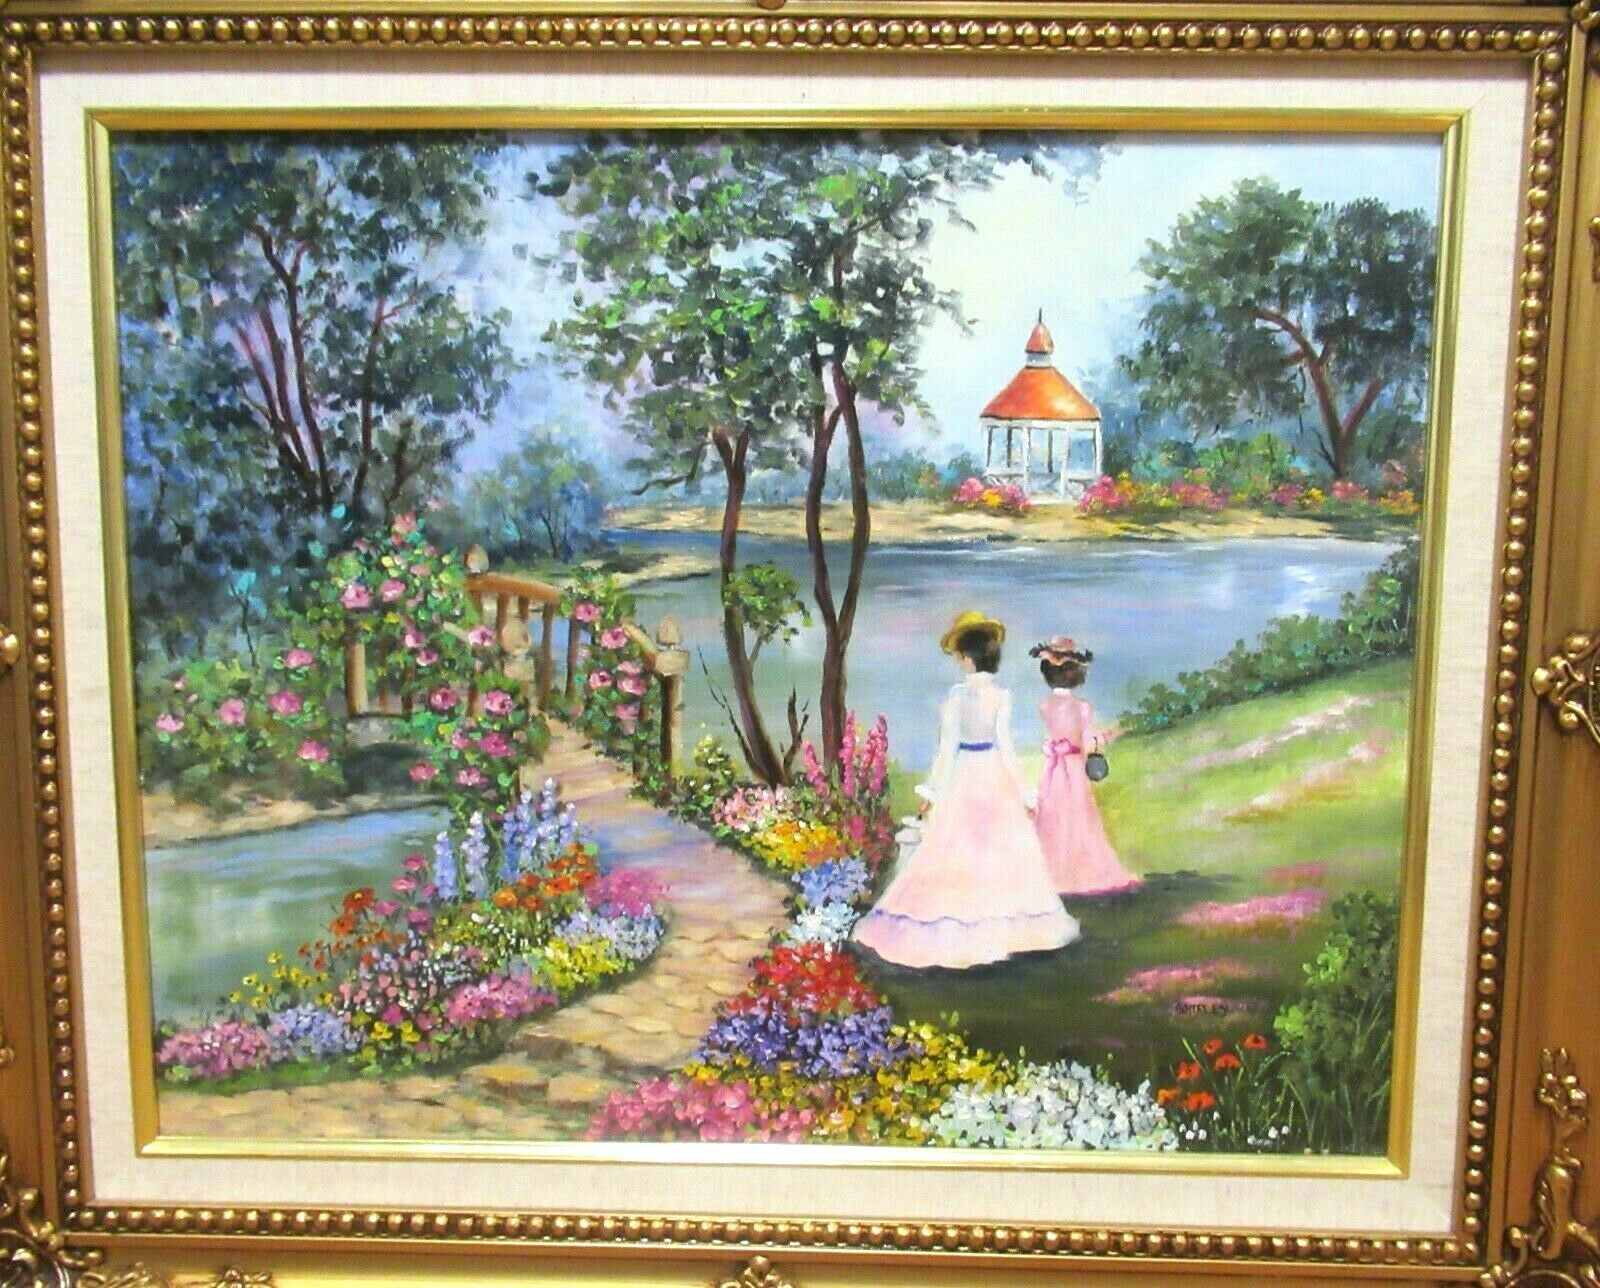 SHIRLEY WOMAN GARDEN BRIDGE ORIGINAL OIL ON CANVAS LANDSCAPE PAINTING - $225.00